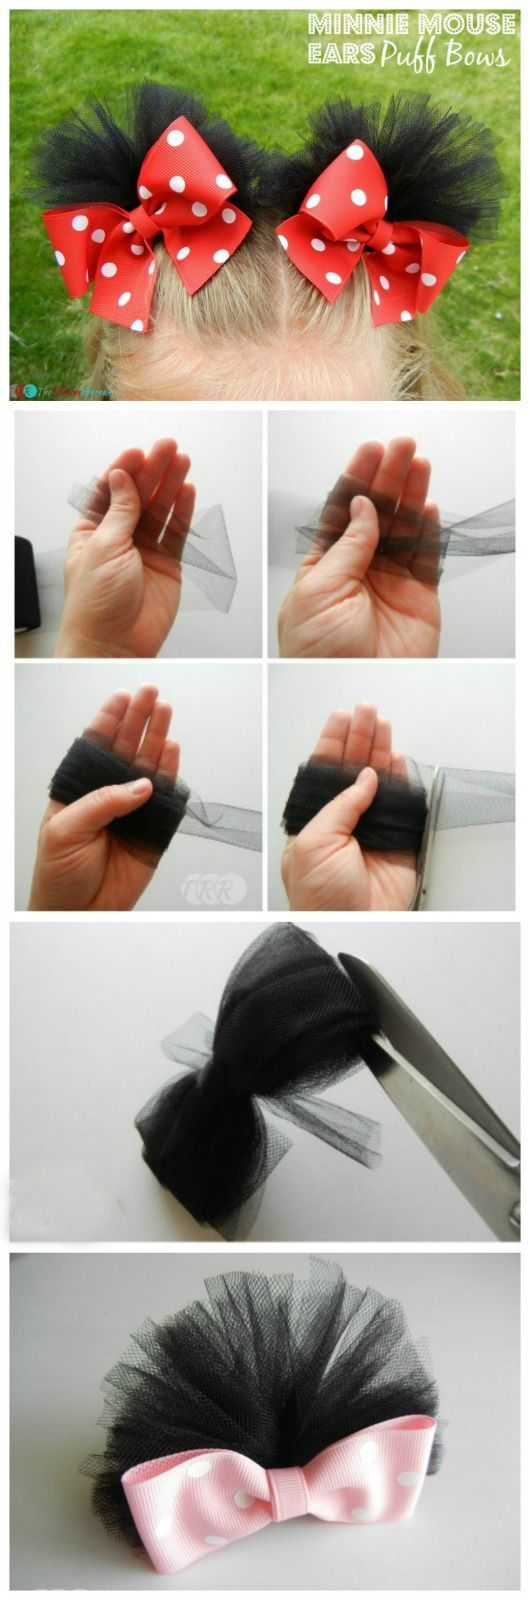 DIY Minnie Mouse Ears Puff Bows for Minnie Mouse Costume.